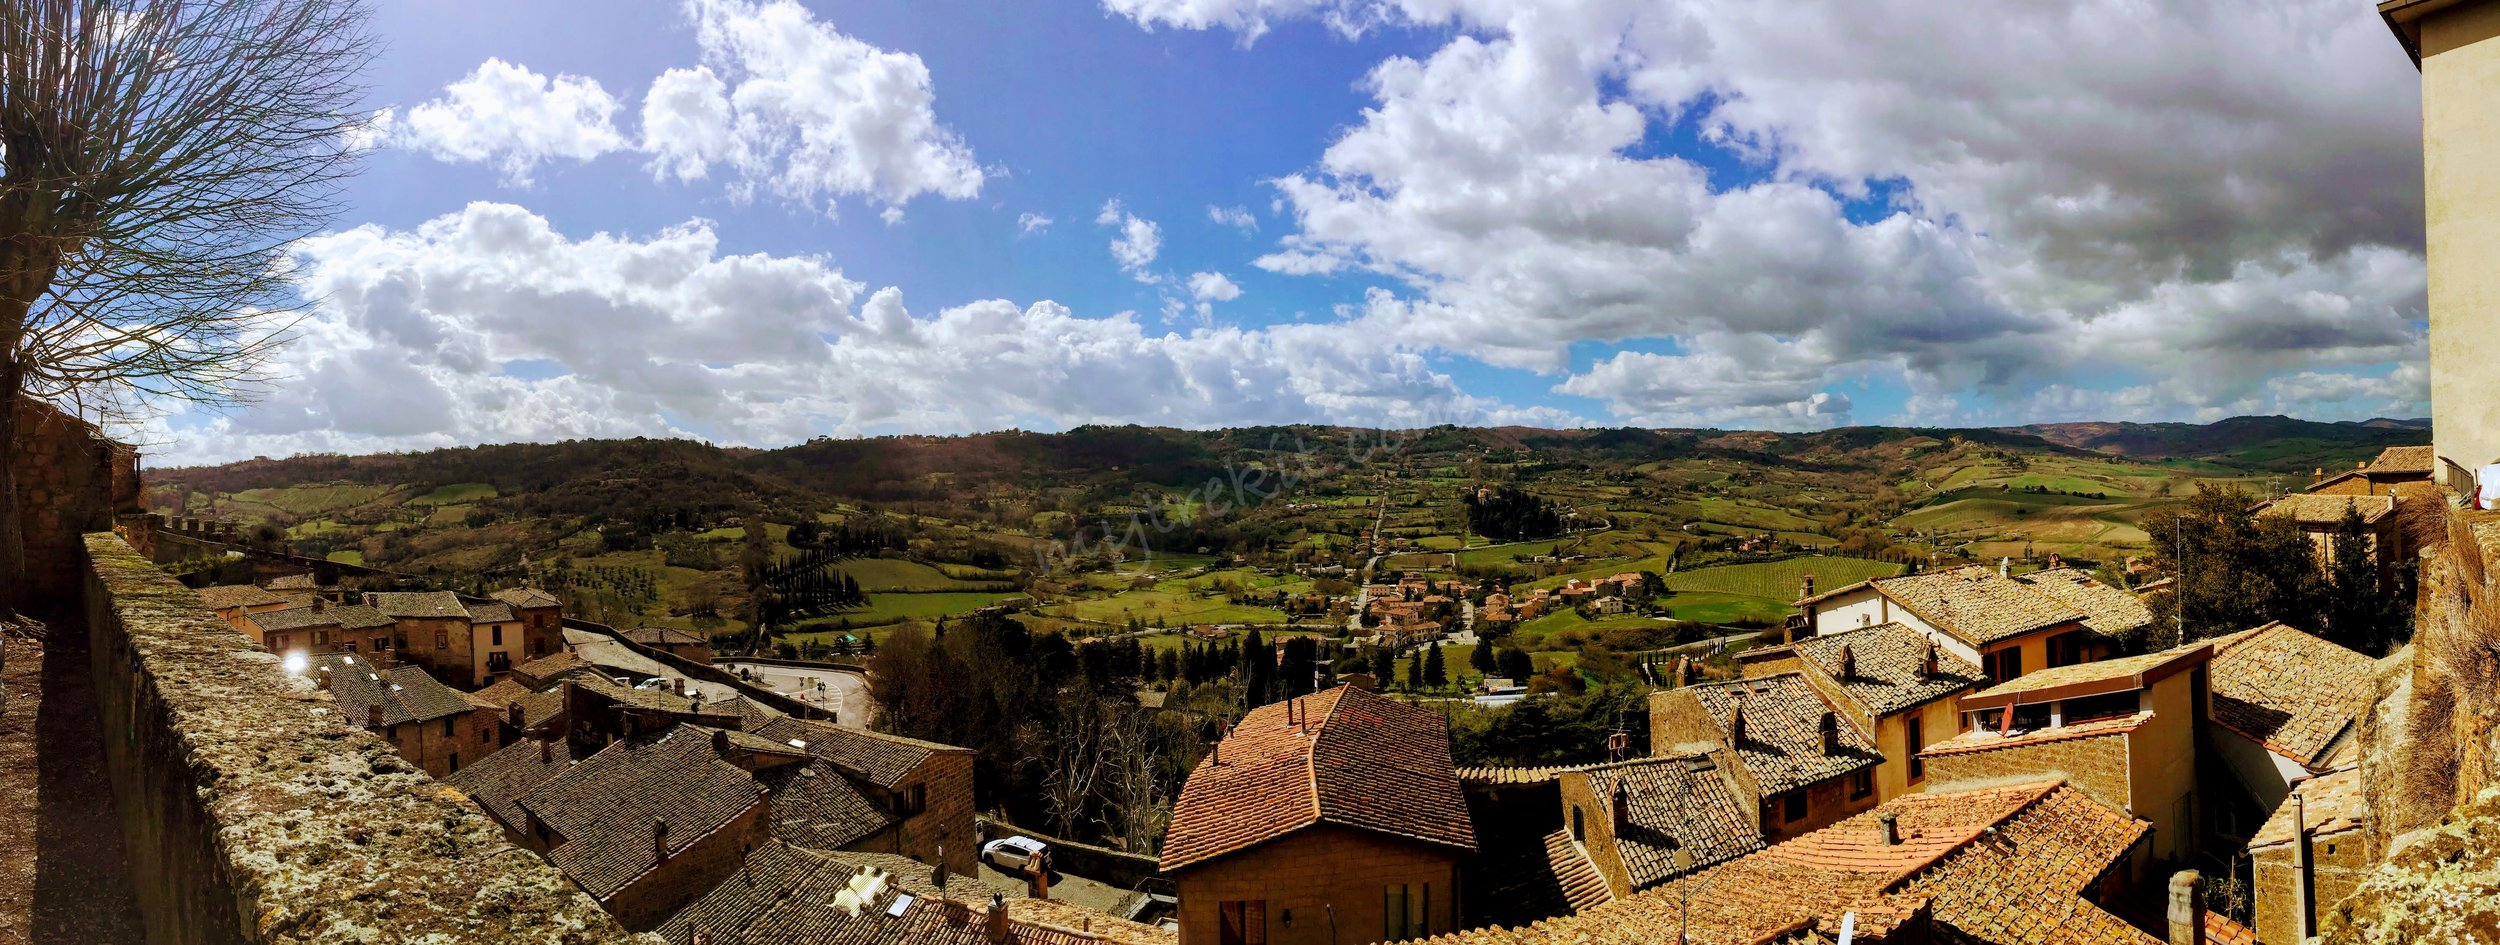 Stunning views from the hilltop town of Orvieto, Italy.